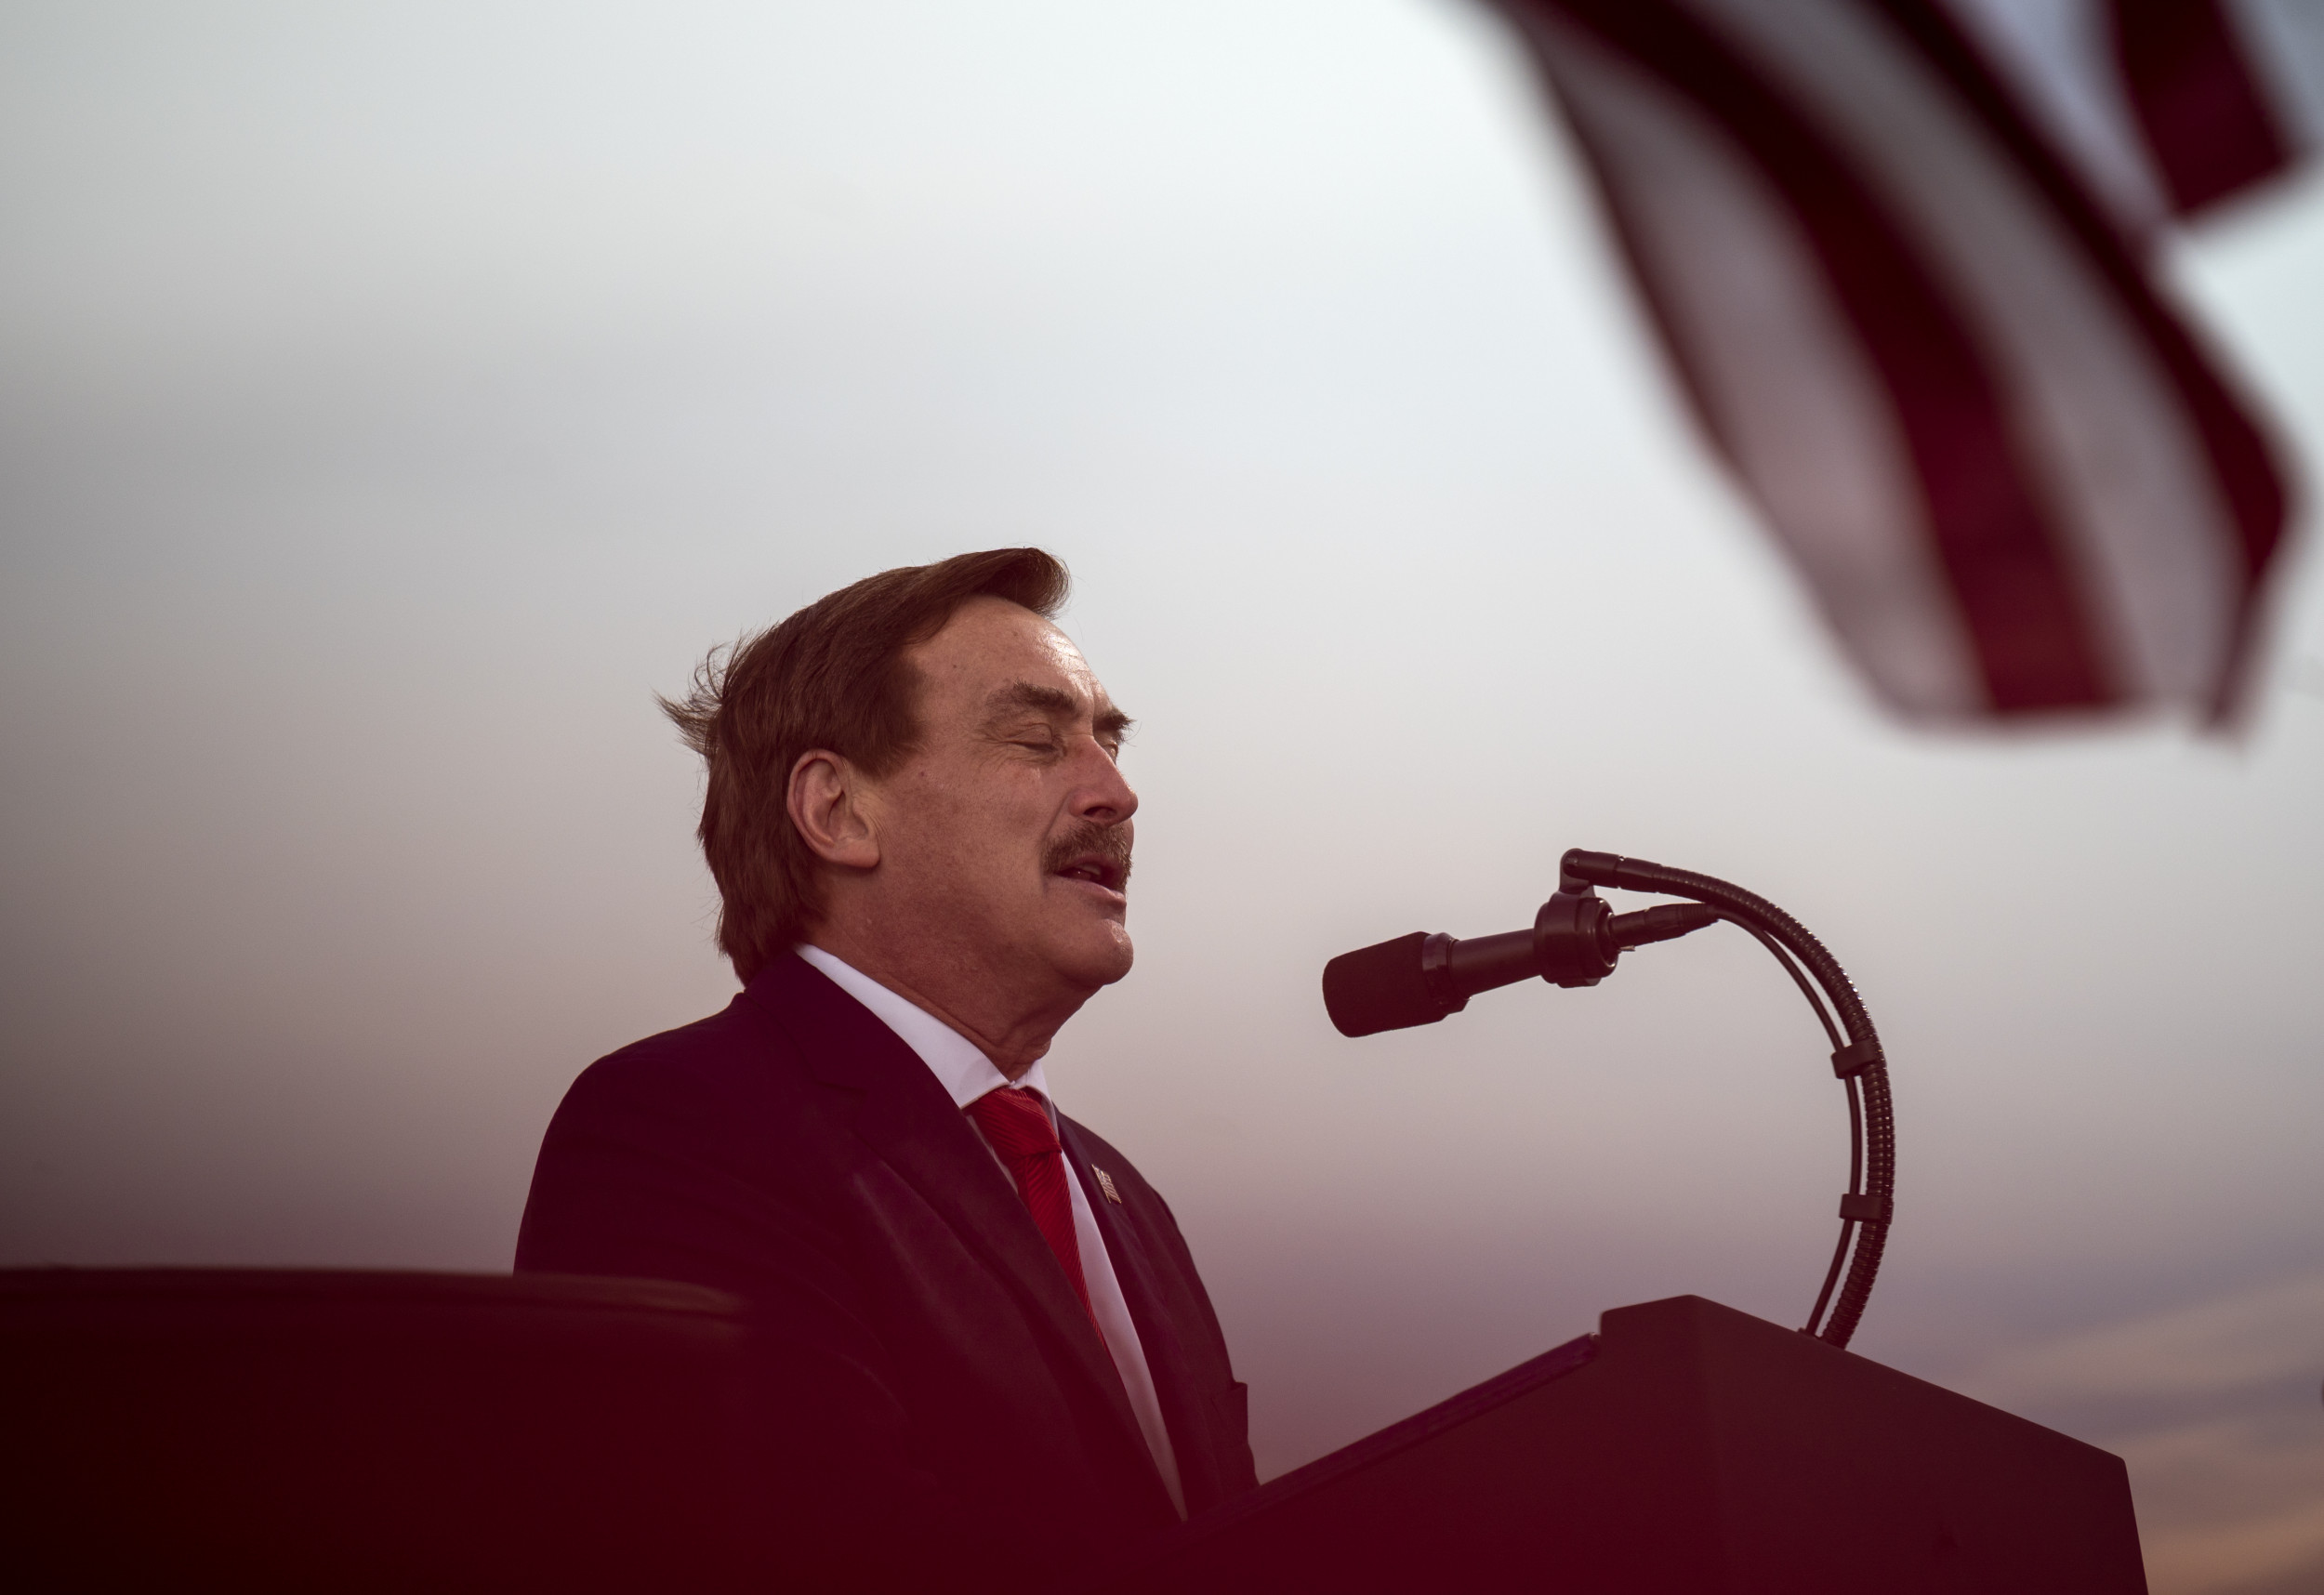 Mike Lindell's Platform Frank to Launch With 'Historical Announcement'